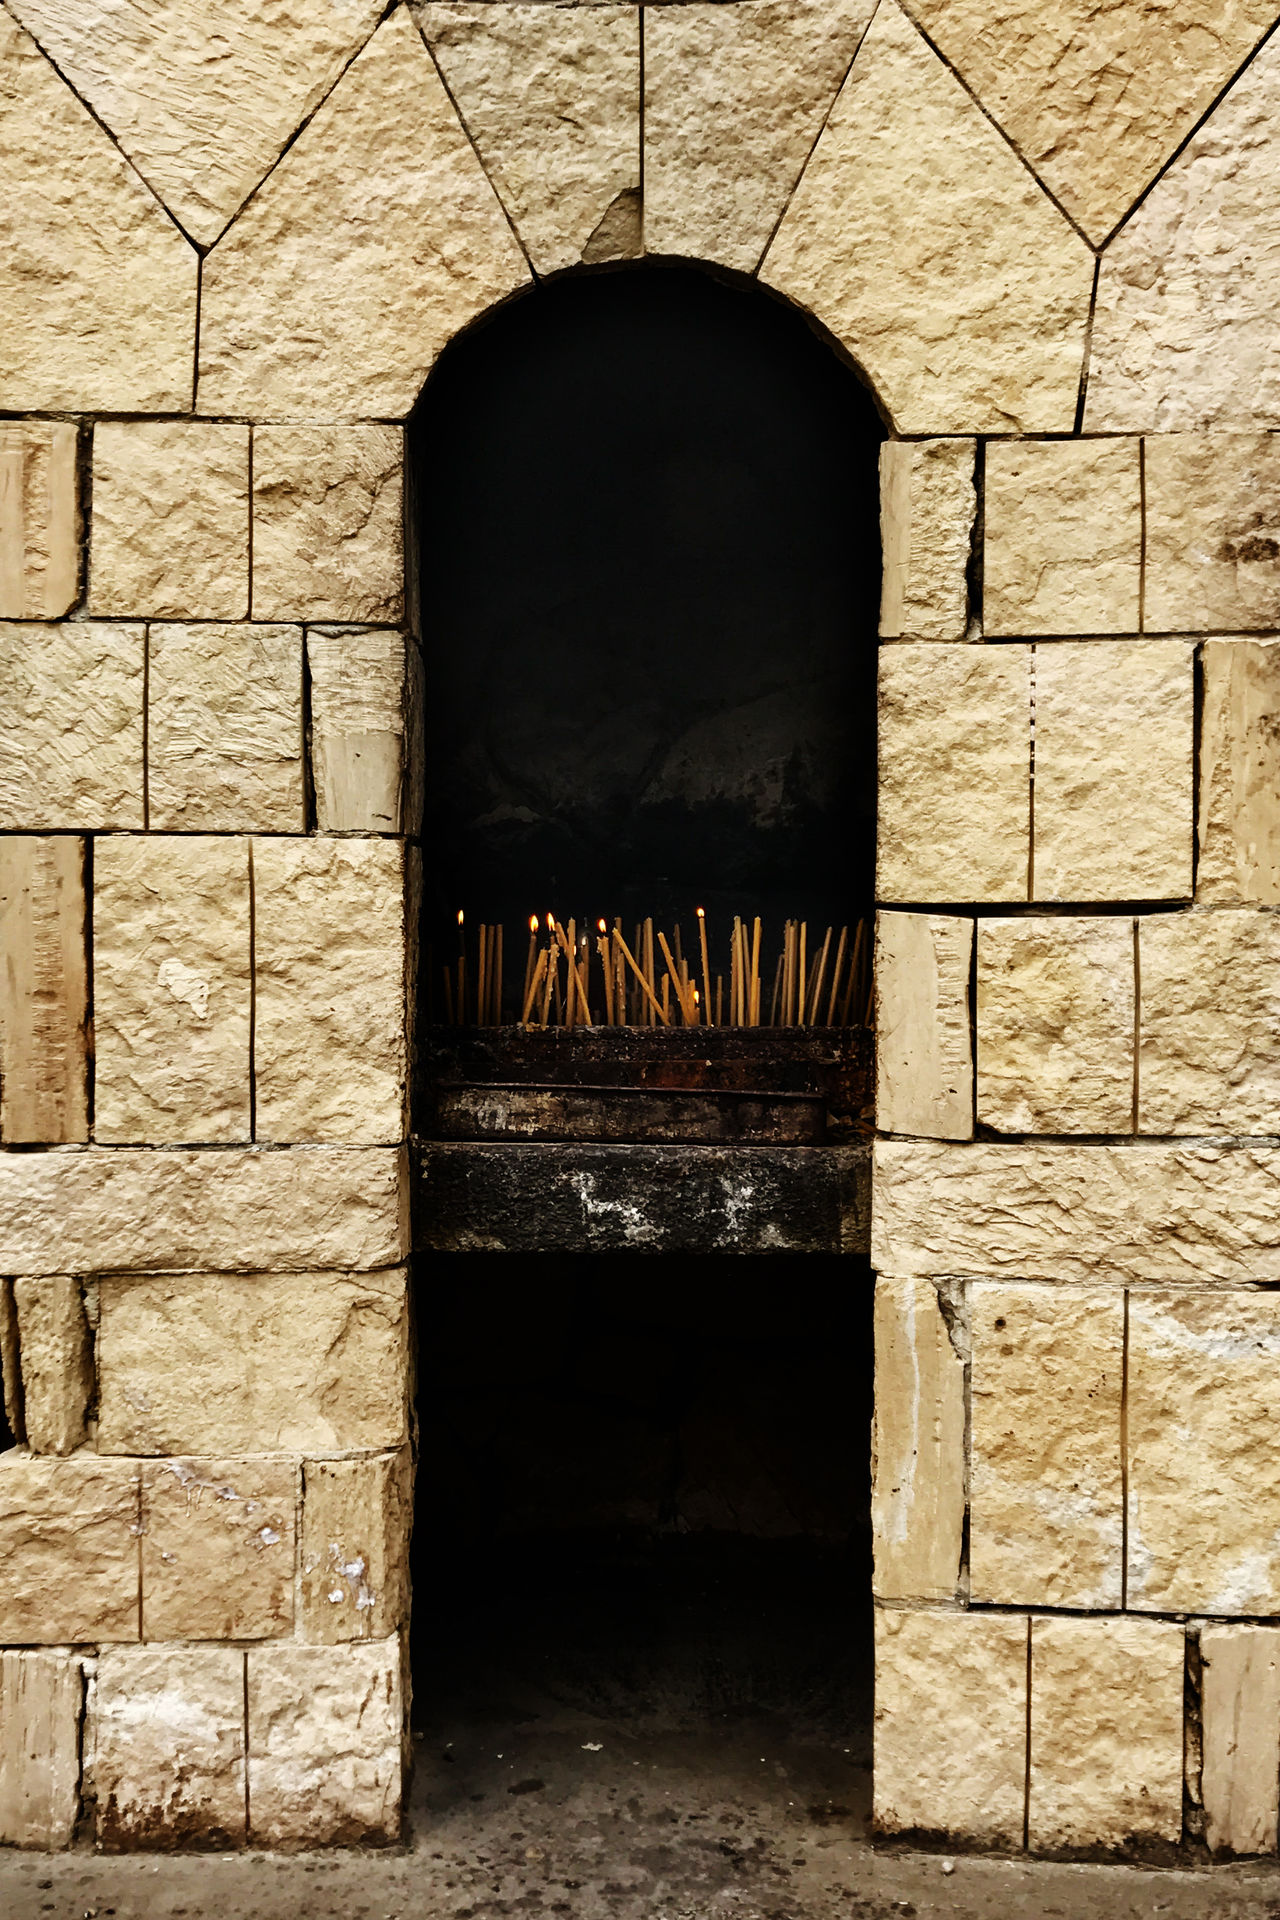 Arch Architecture Brick Wall Building Exterior Built Structure Candle Candle Flame Candlelight Day No People Outdoors Pilgrimage Pilgrimage Church Spirituality